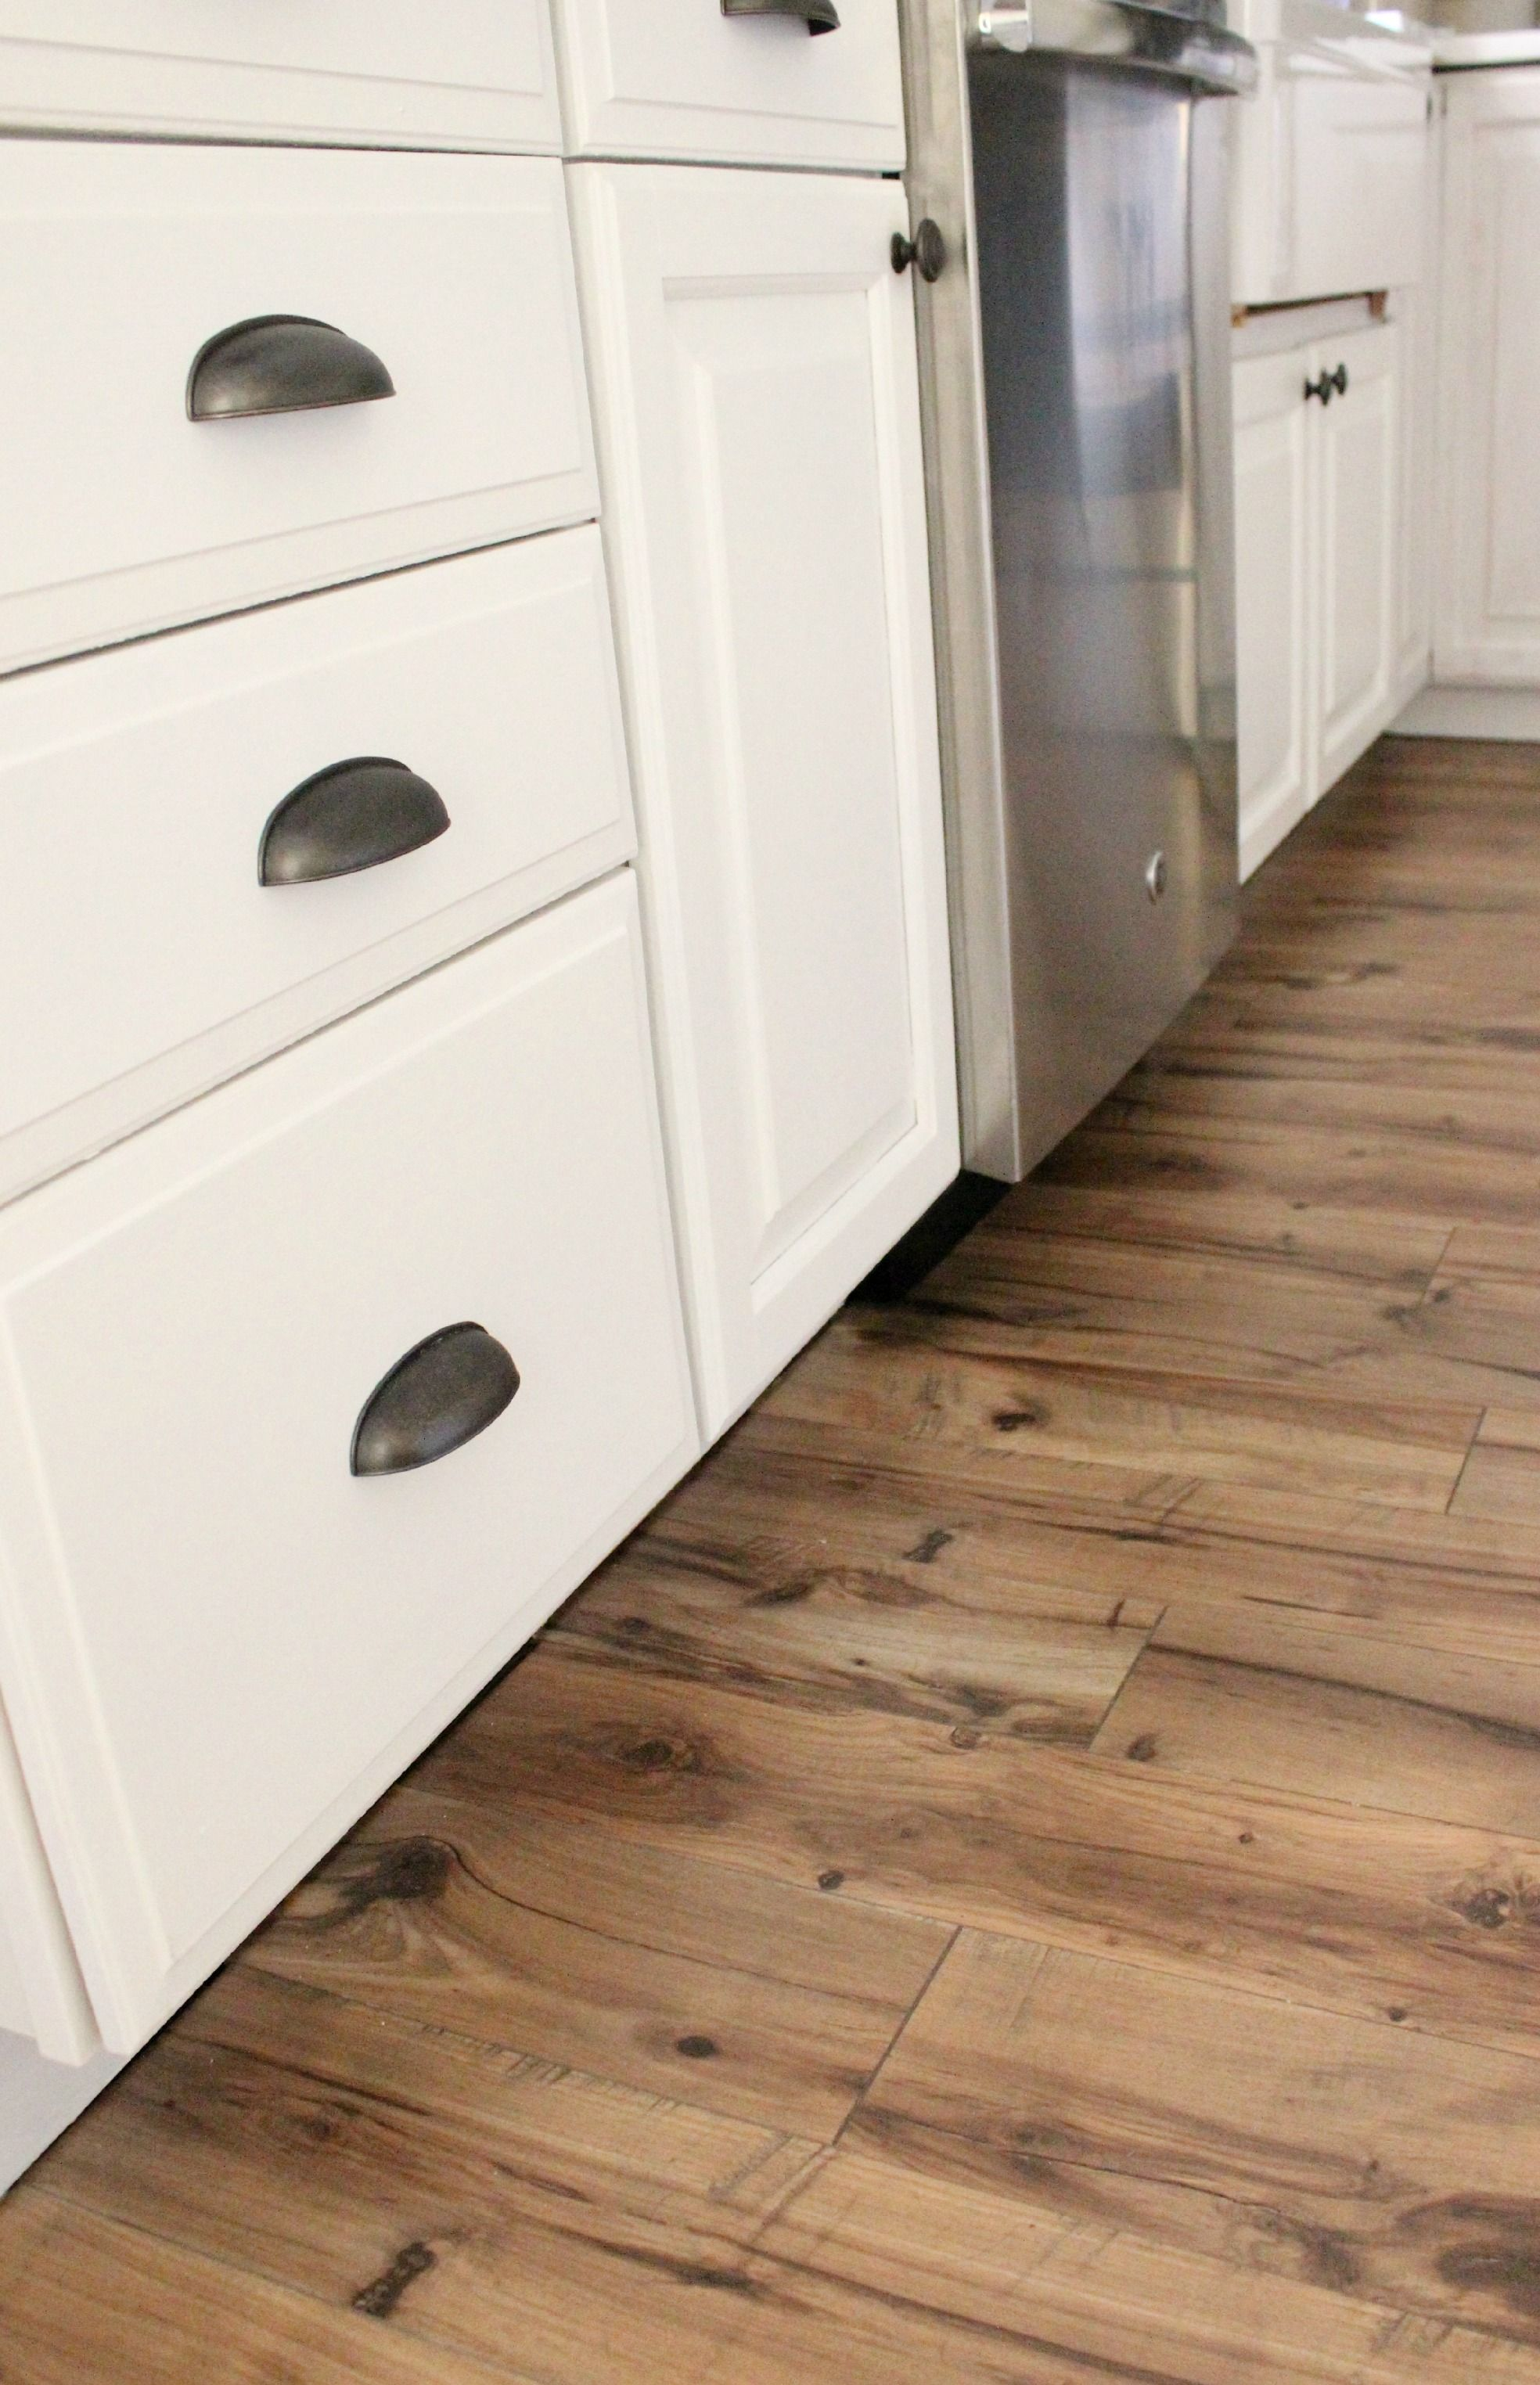 Incroyable A Review On How And Why We Chose Pergo Laminate Flooring Over Hardwood  Flooring.